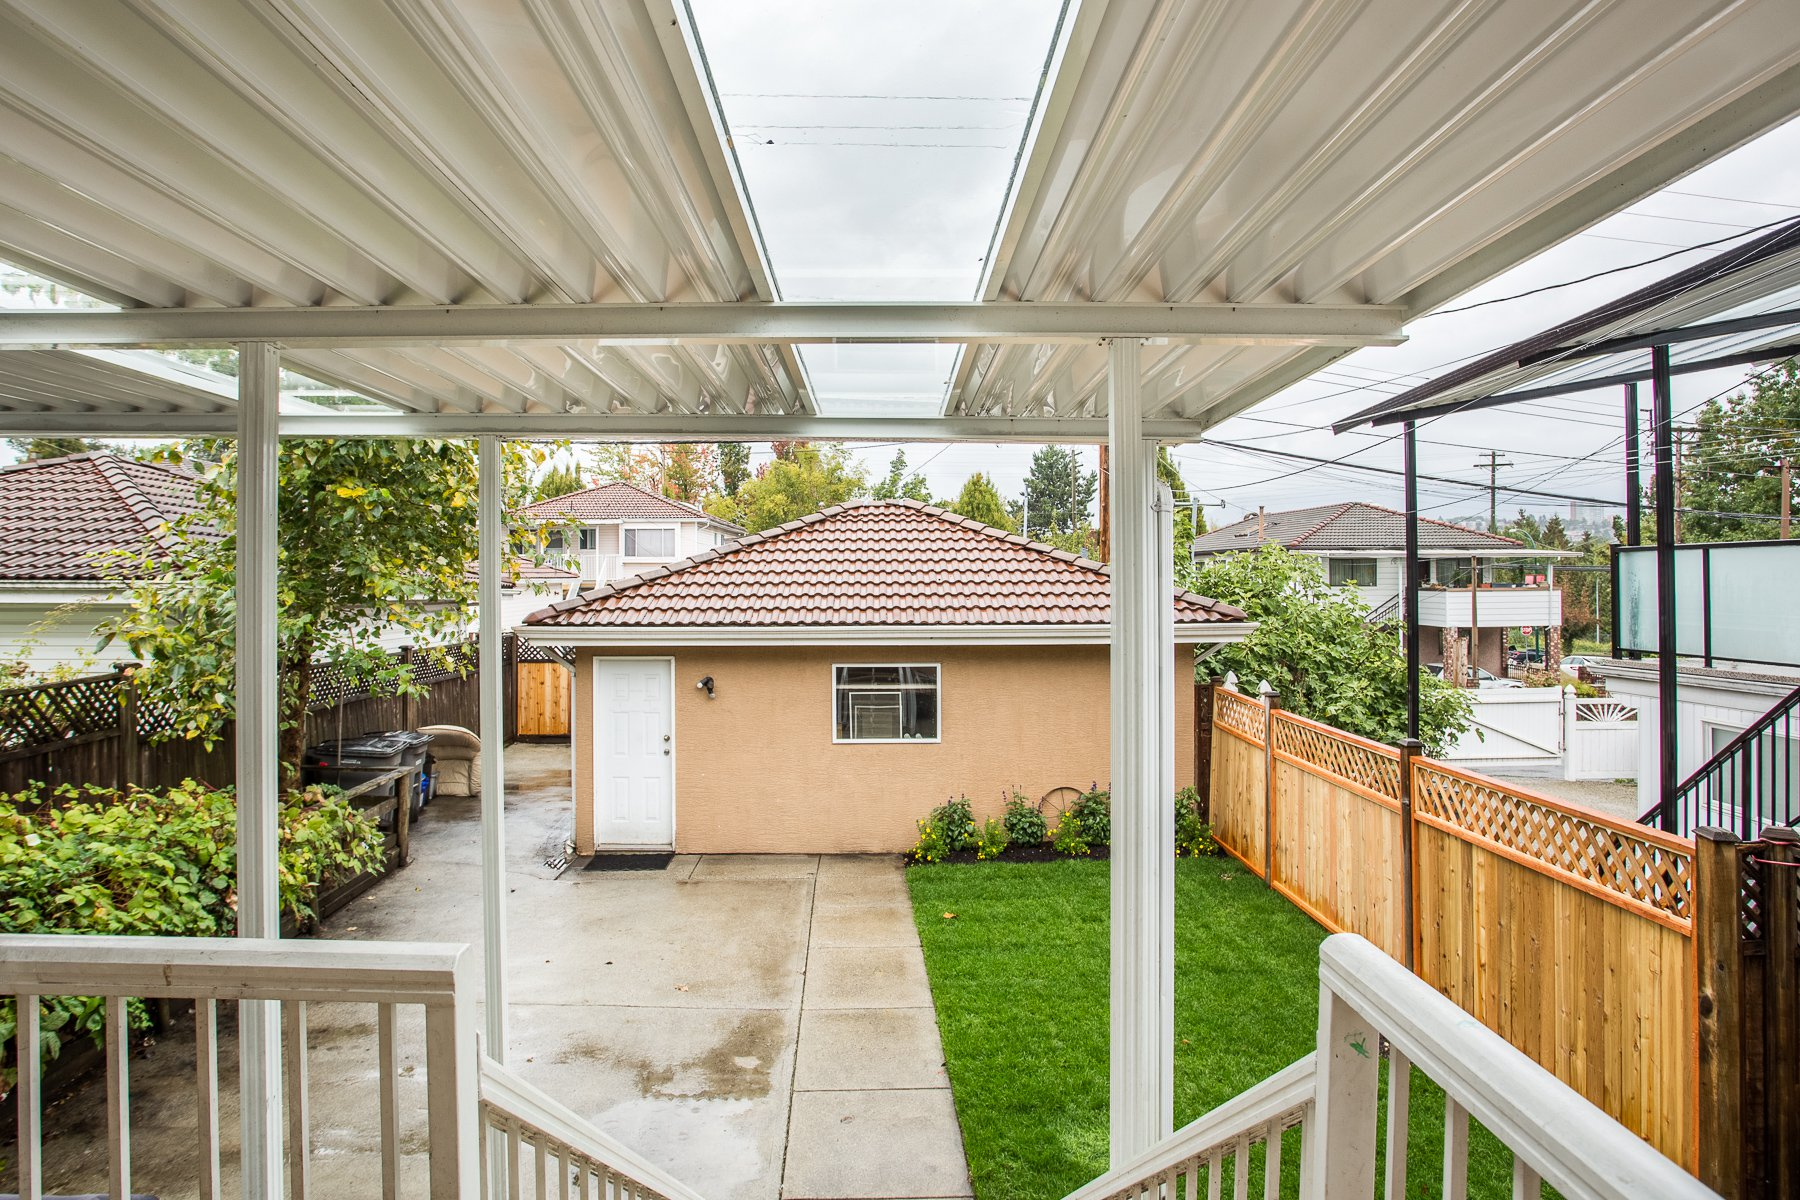 Photo 28: Photos: 3387 E. 2nd Ave in Vancouver: House for sale (Vancouver East)